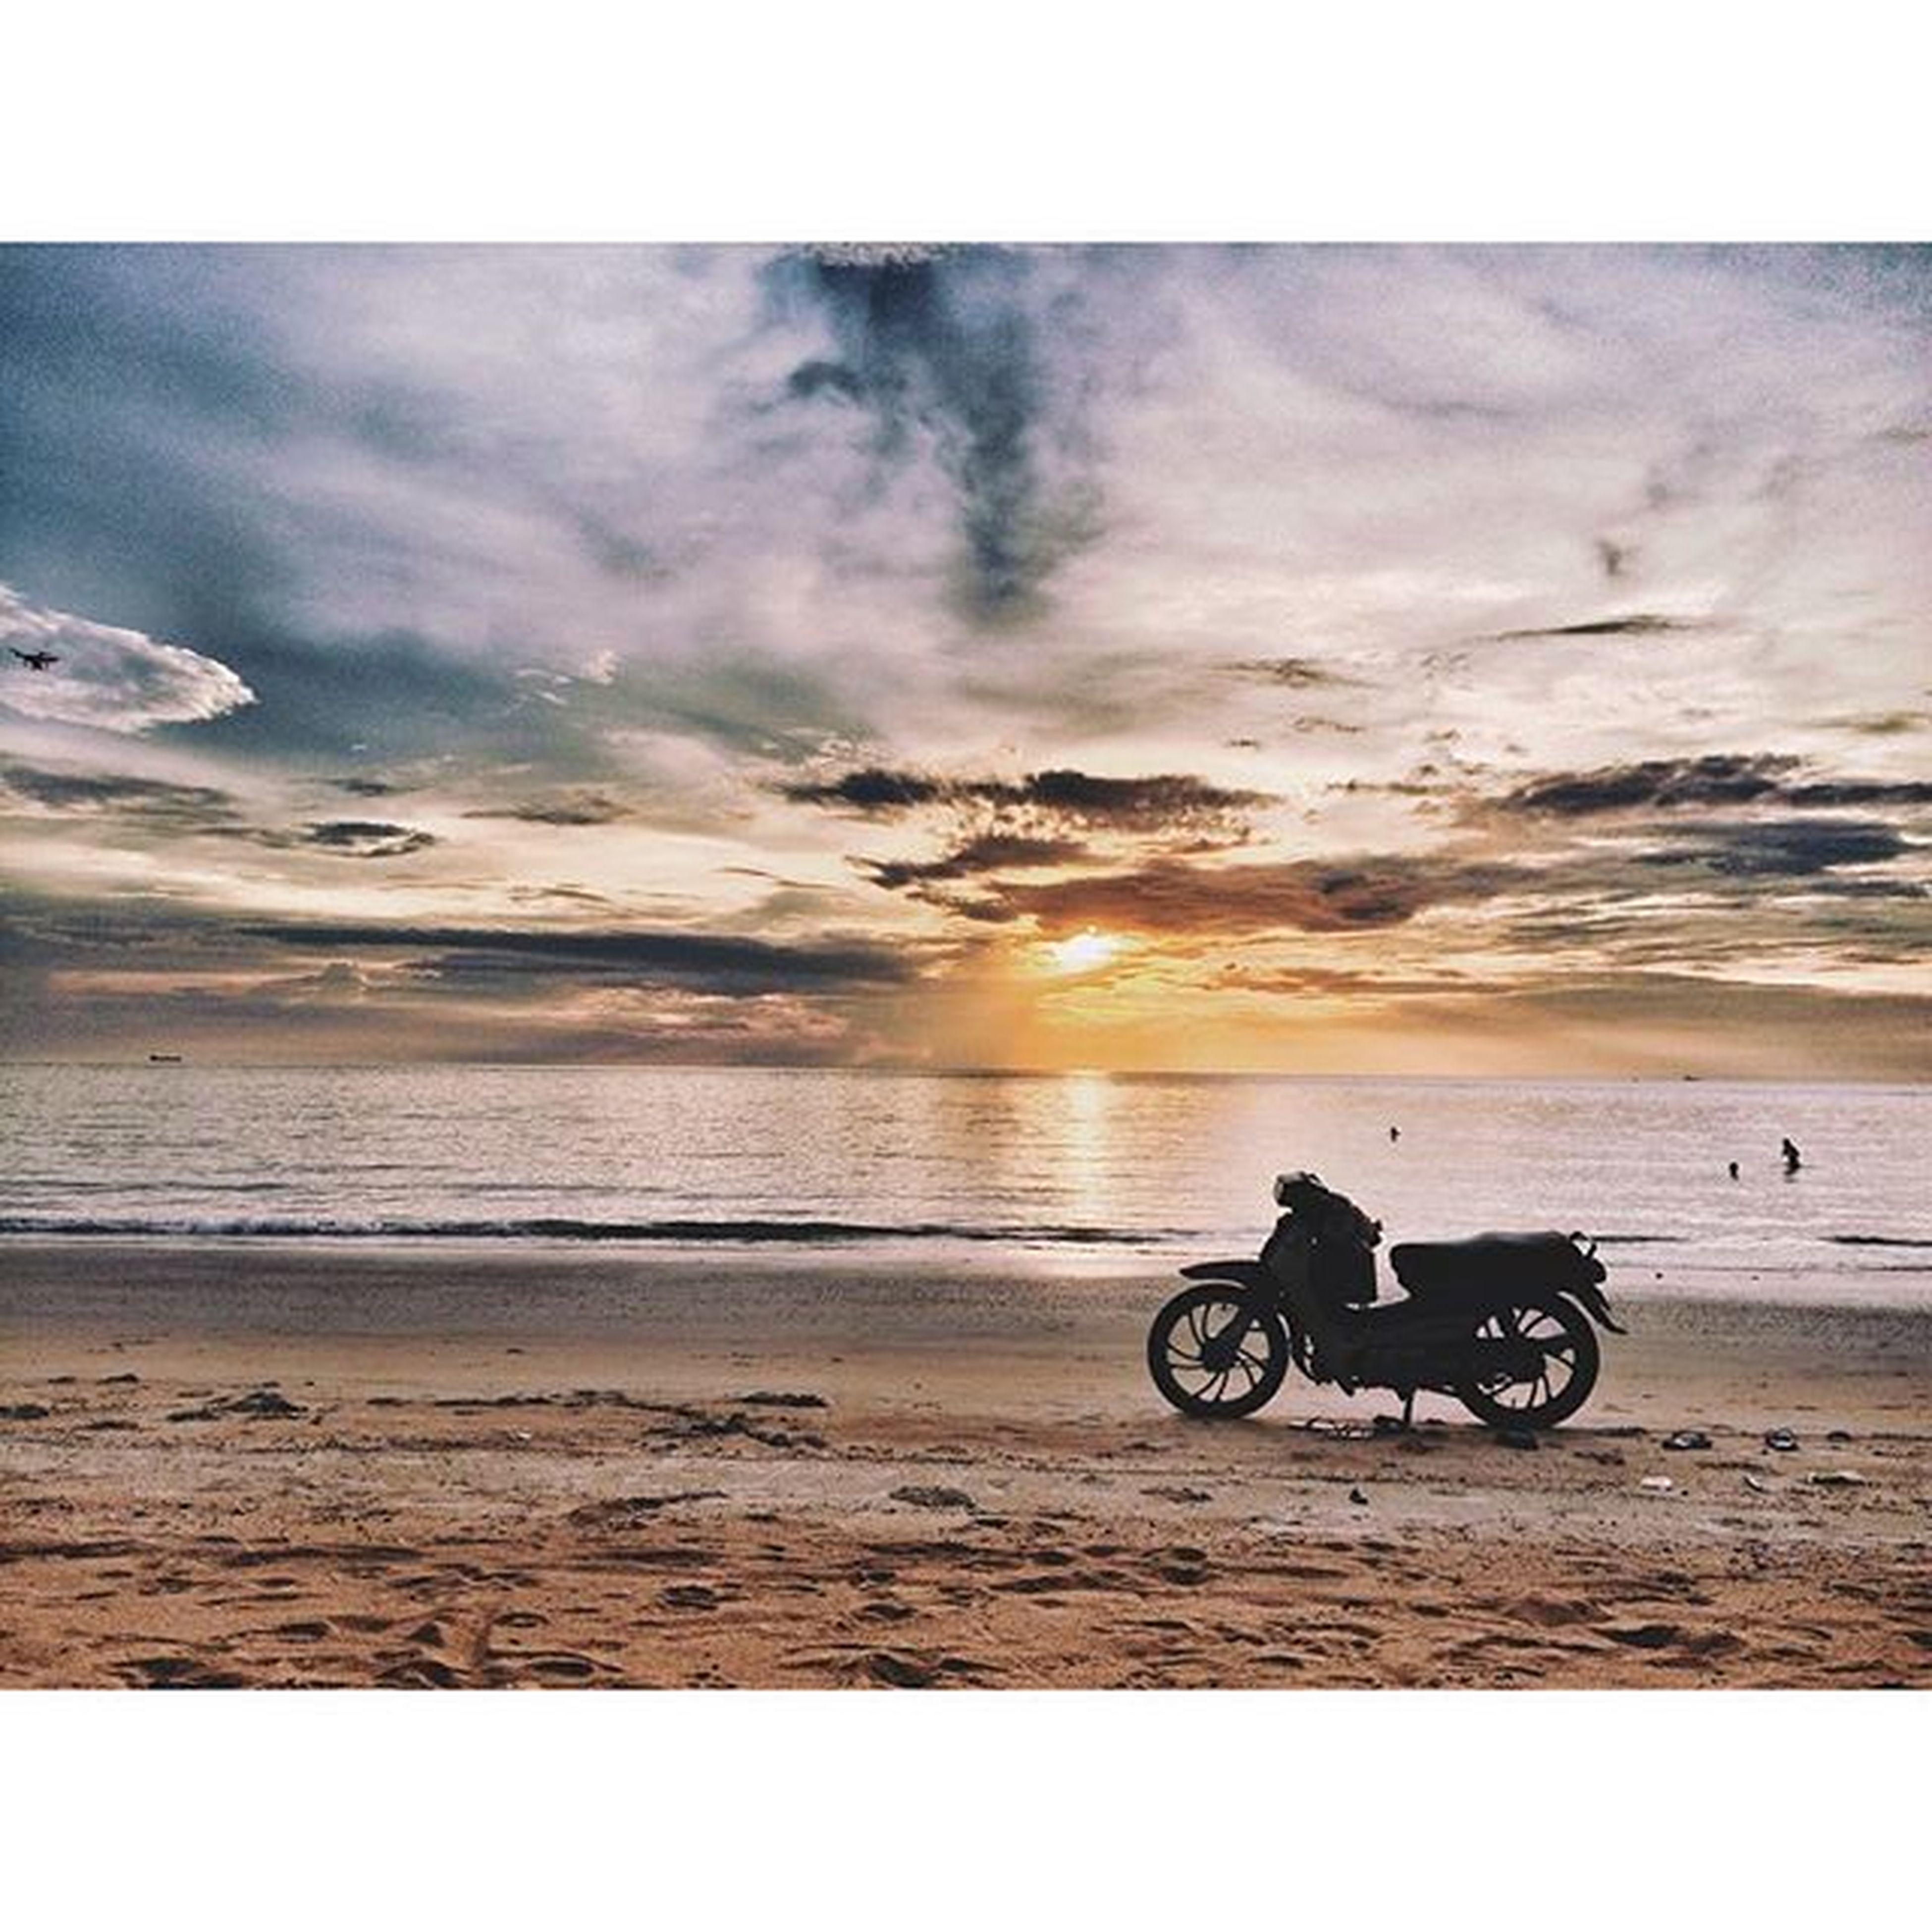 transportation, mode of transport, bicycle, sea, land vehicle, horizon over water, sky, beach, sunset, water, shore, men, scenics, auto post production filter, cloud - sky, beauty in nature, travel, leisure activity